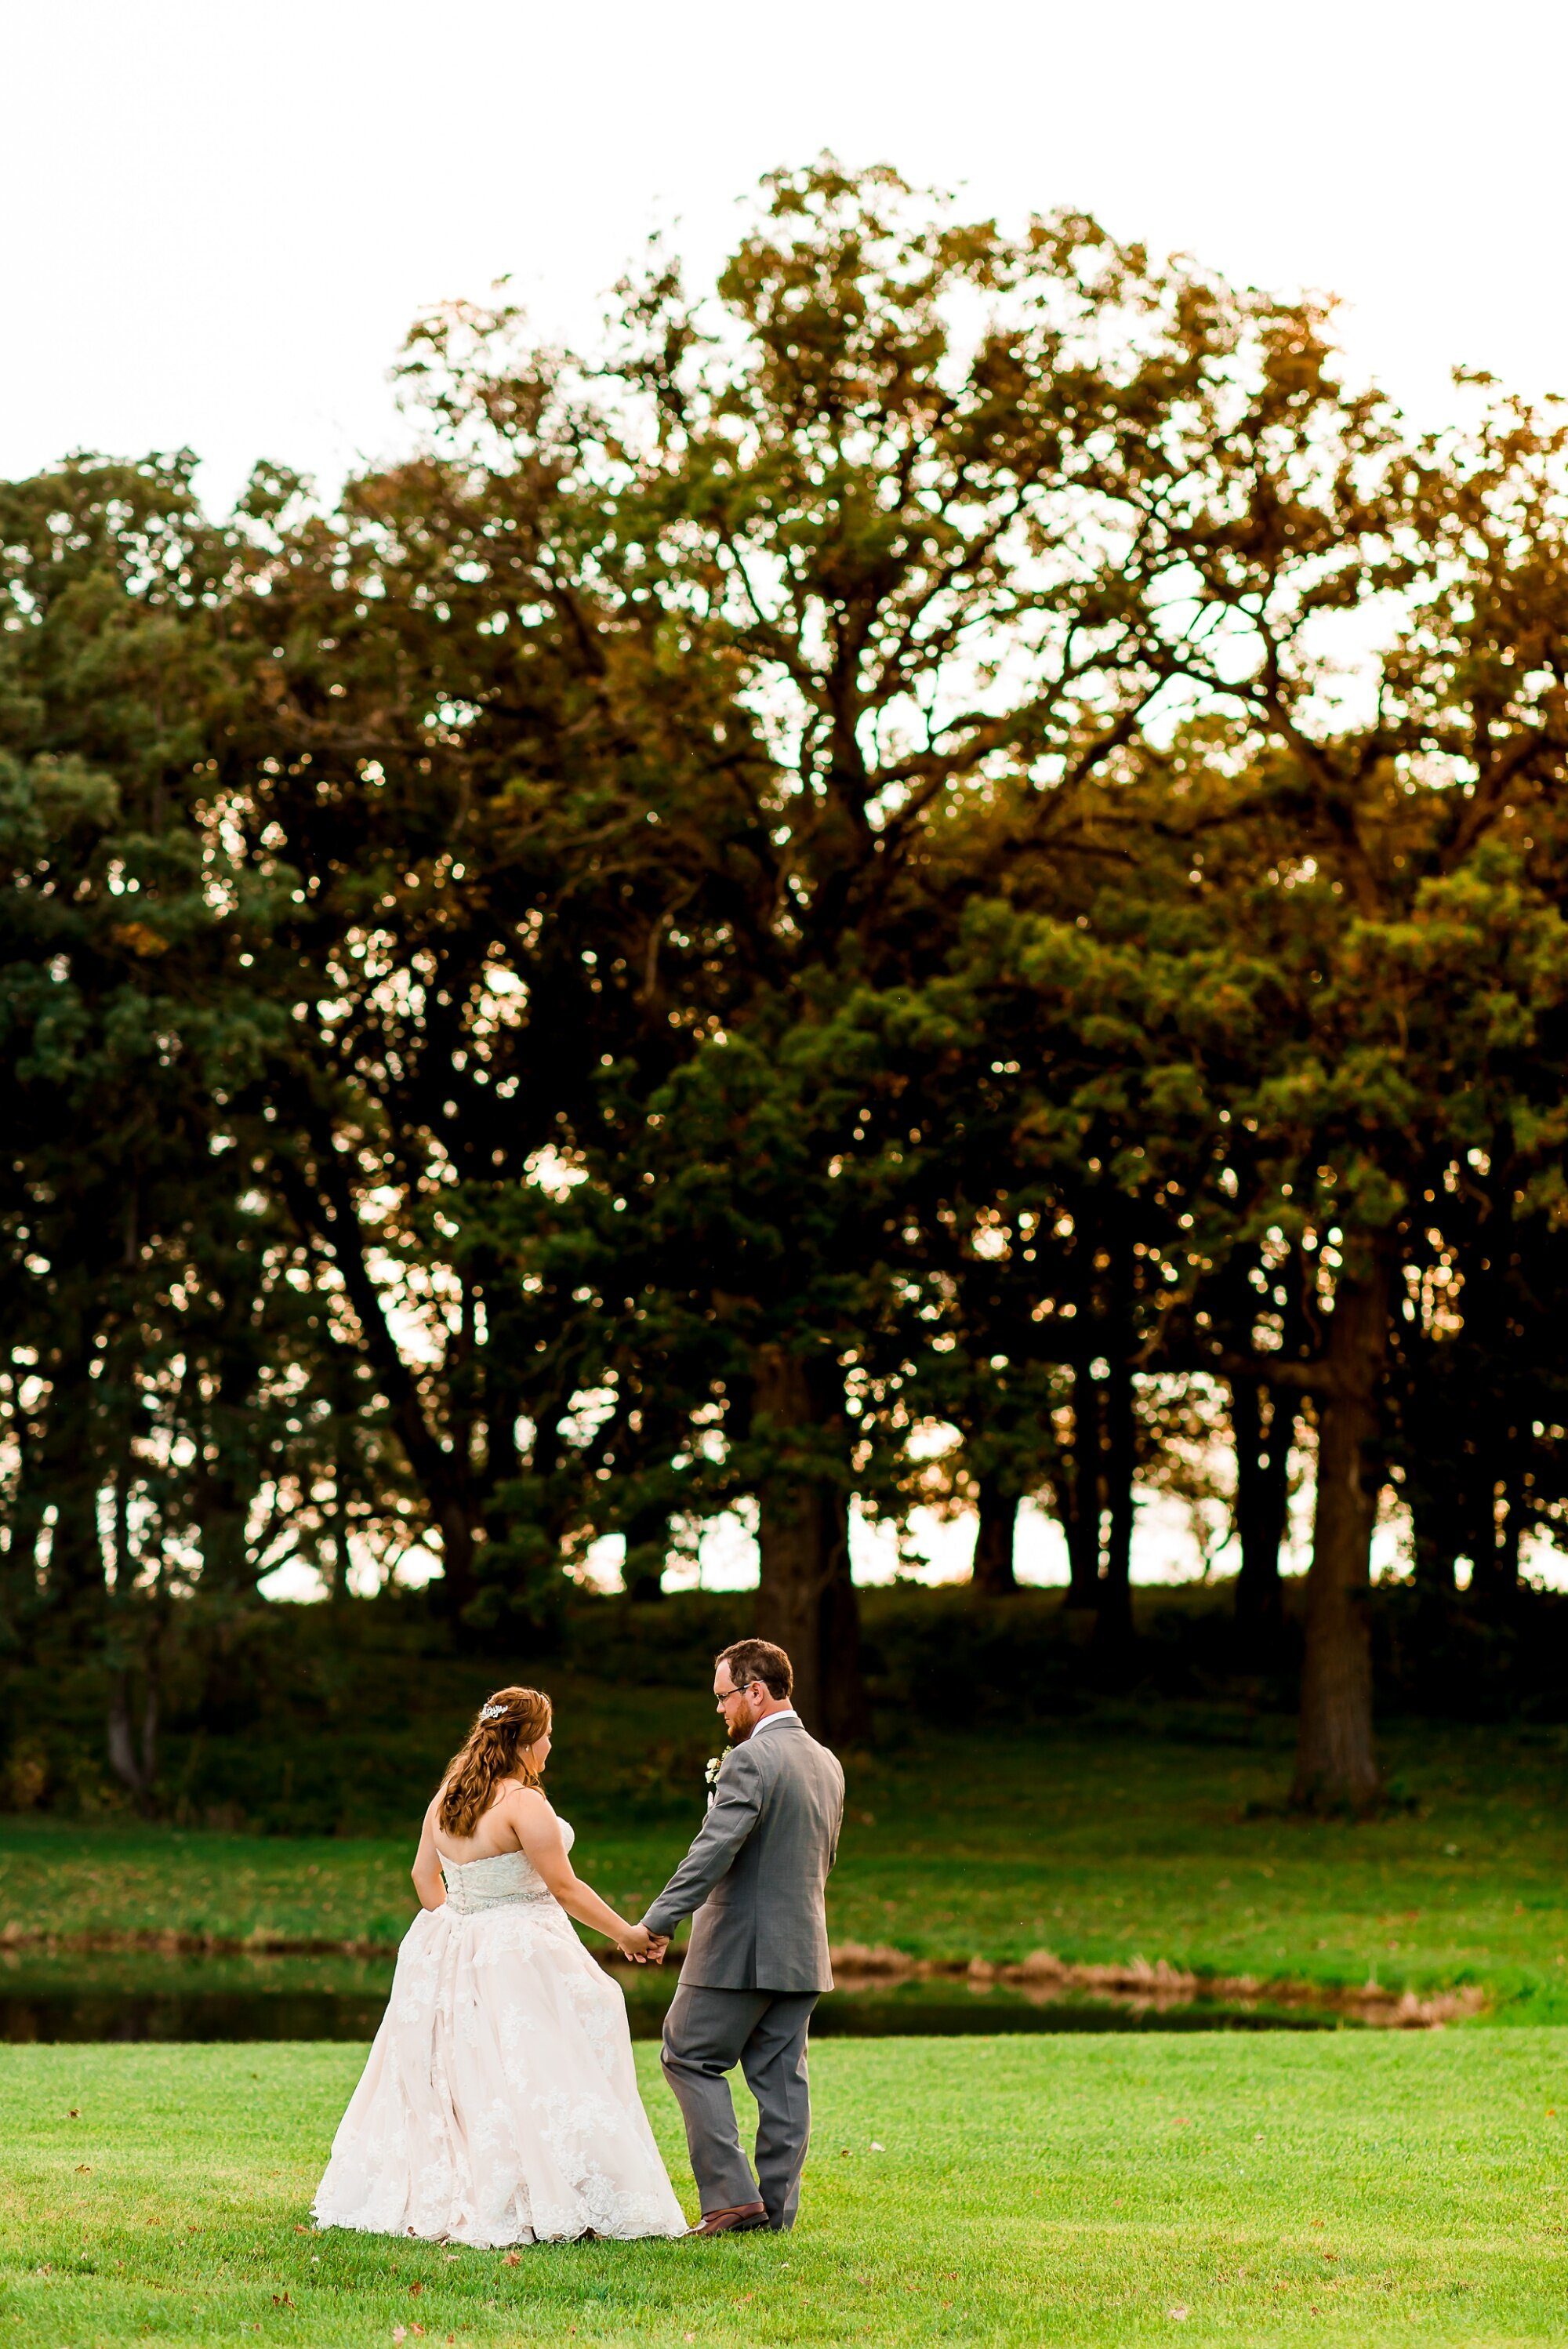 Amber Langerud Photography_Lake Park Minnesota, Outdoor Barn Wedding With Horses_7020.jpg